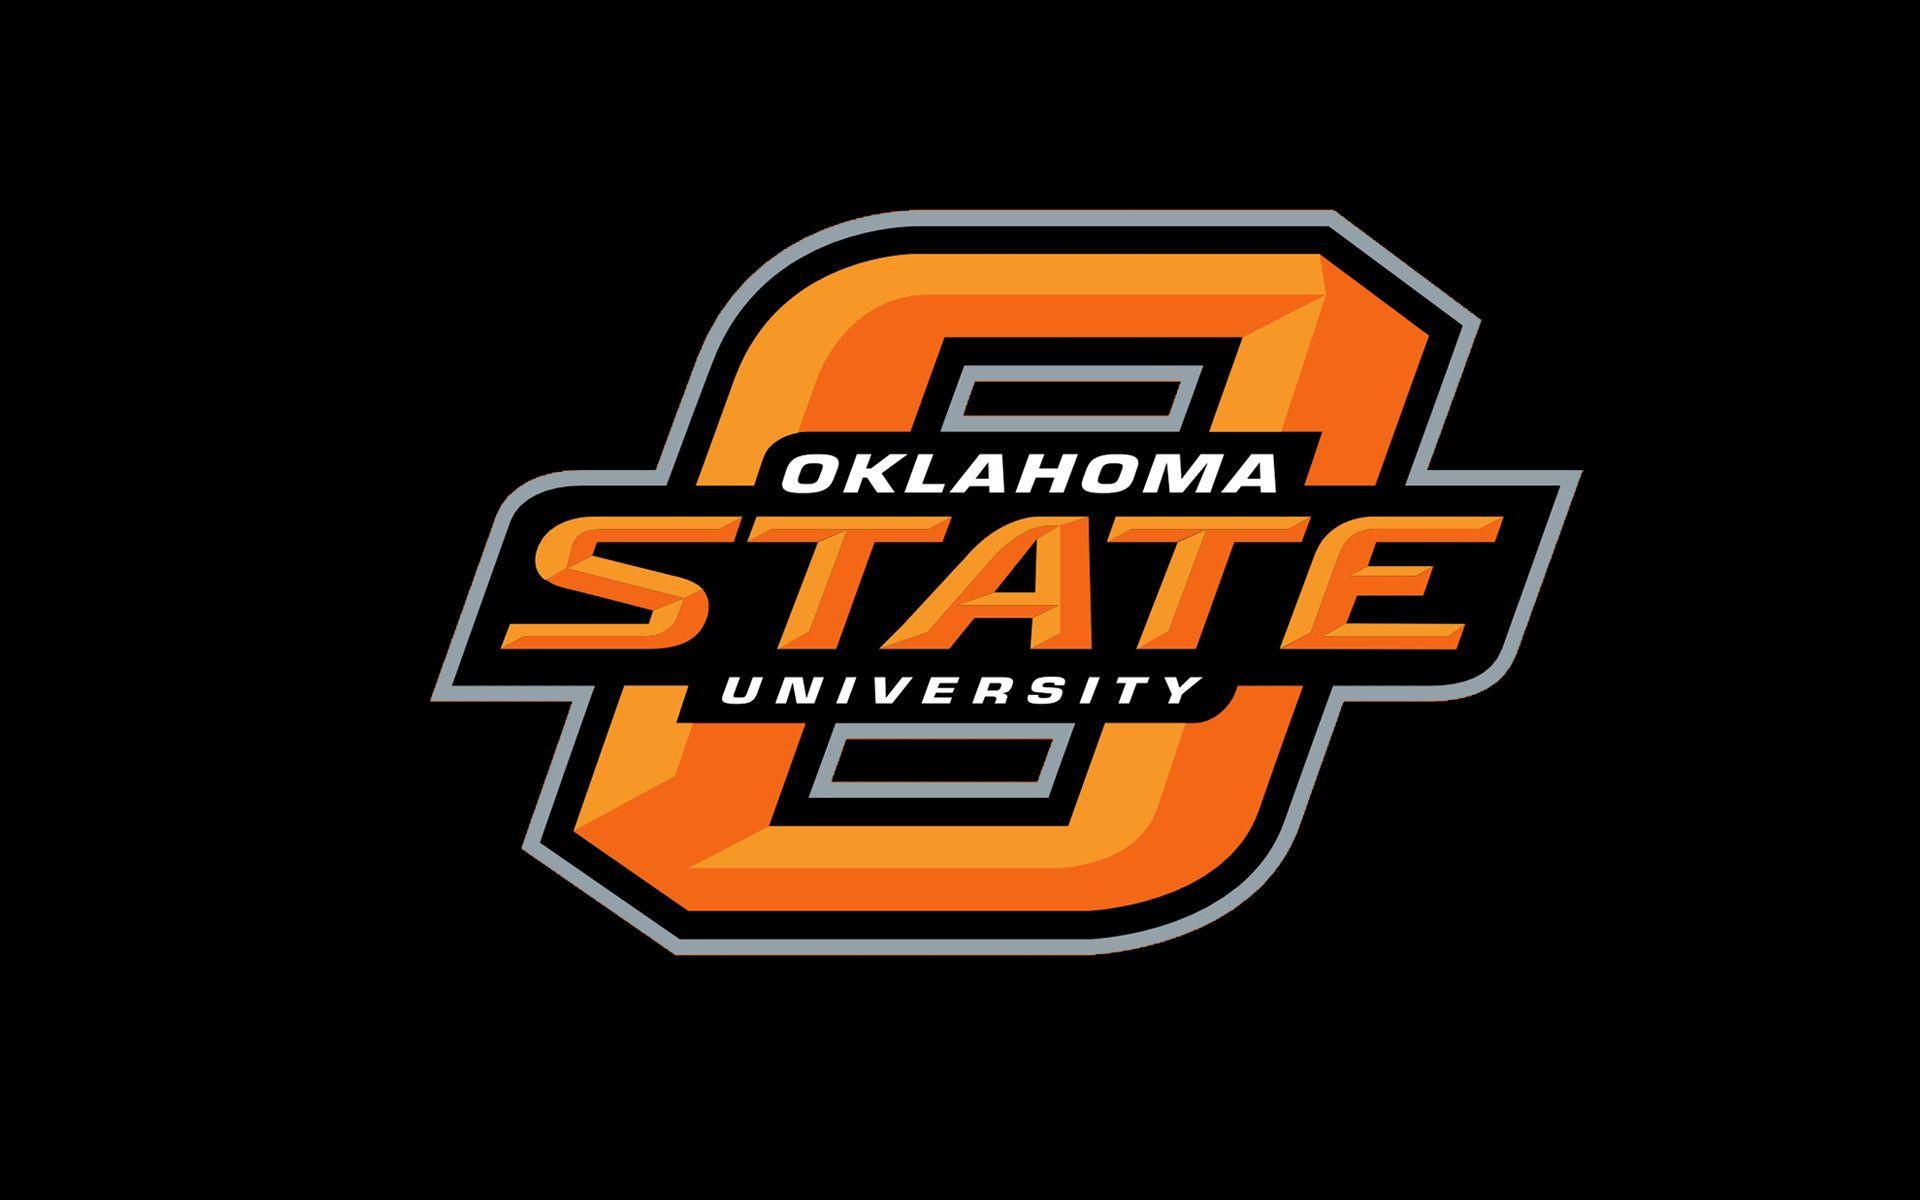 Oklahoma State Wallpapers - Wallpaper Cave